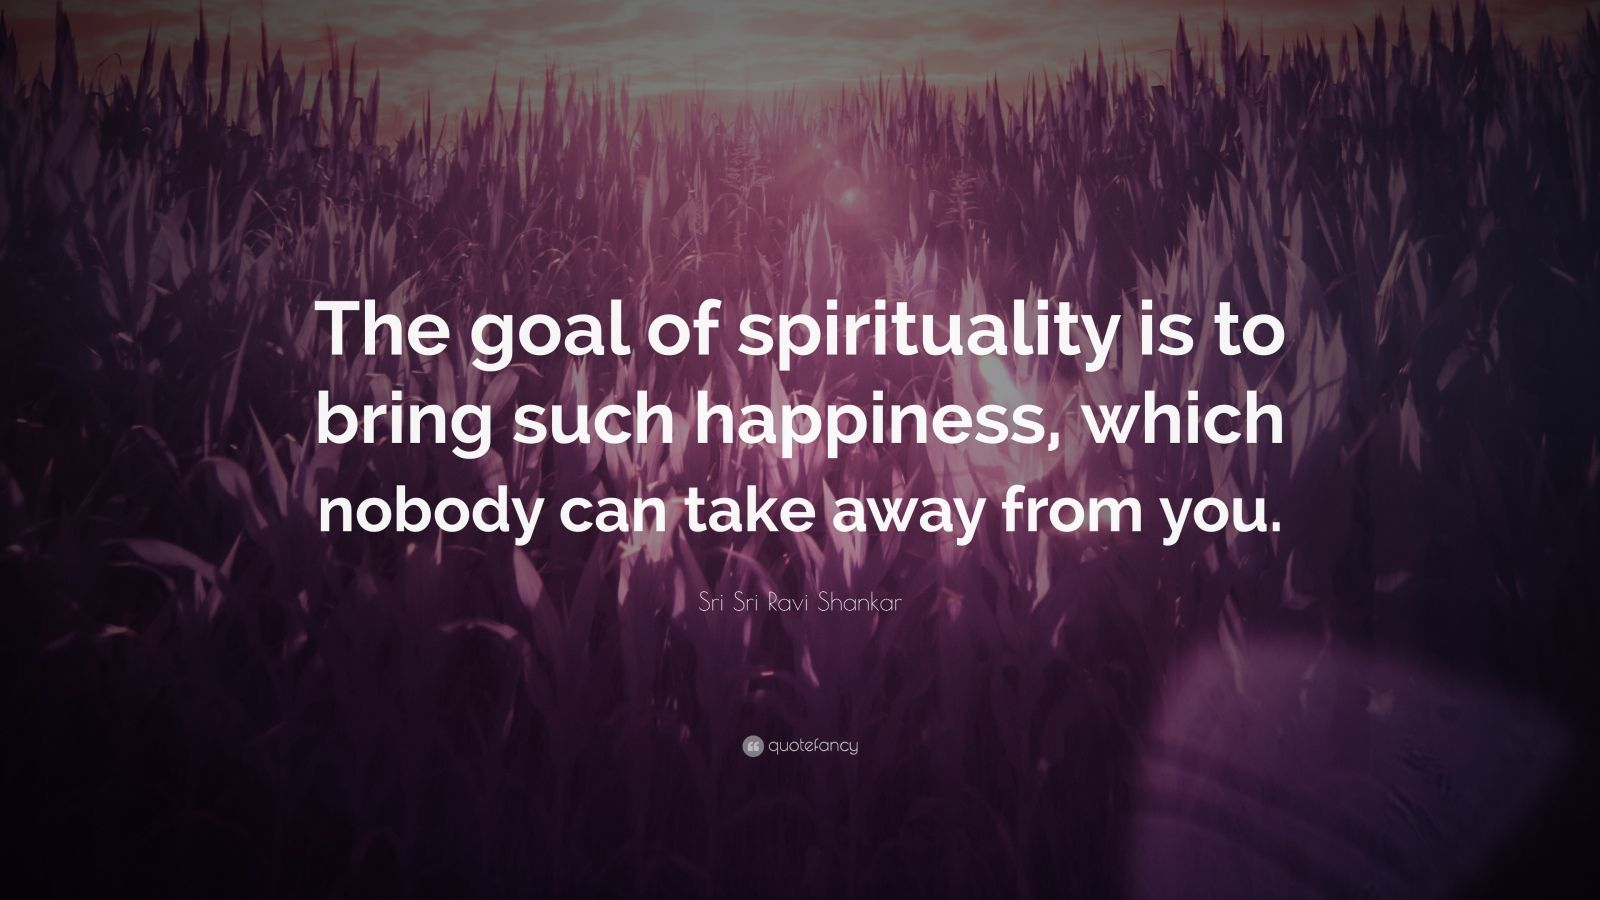 """Sri Sri Ravi Shankar Quote: """"The goal of spirituality is to bring such happiness, which nobody can take away from you."""""""